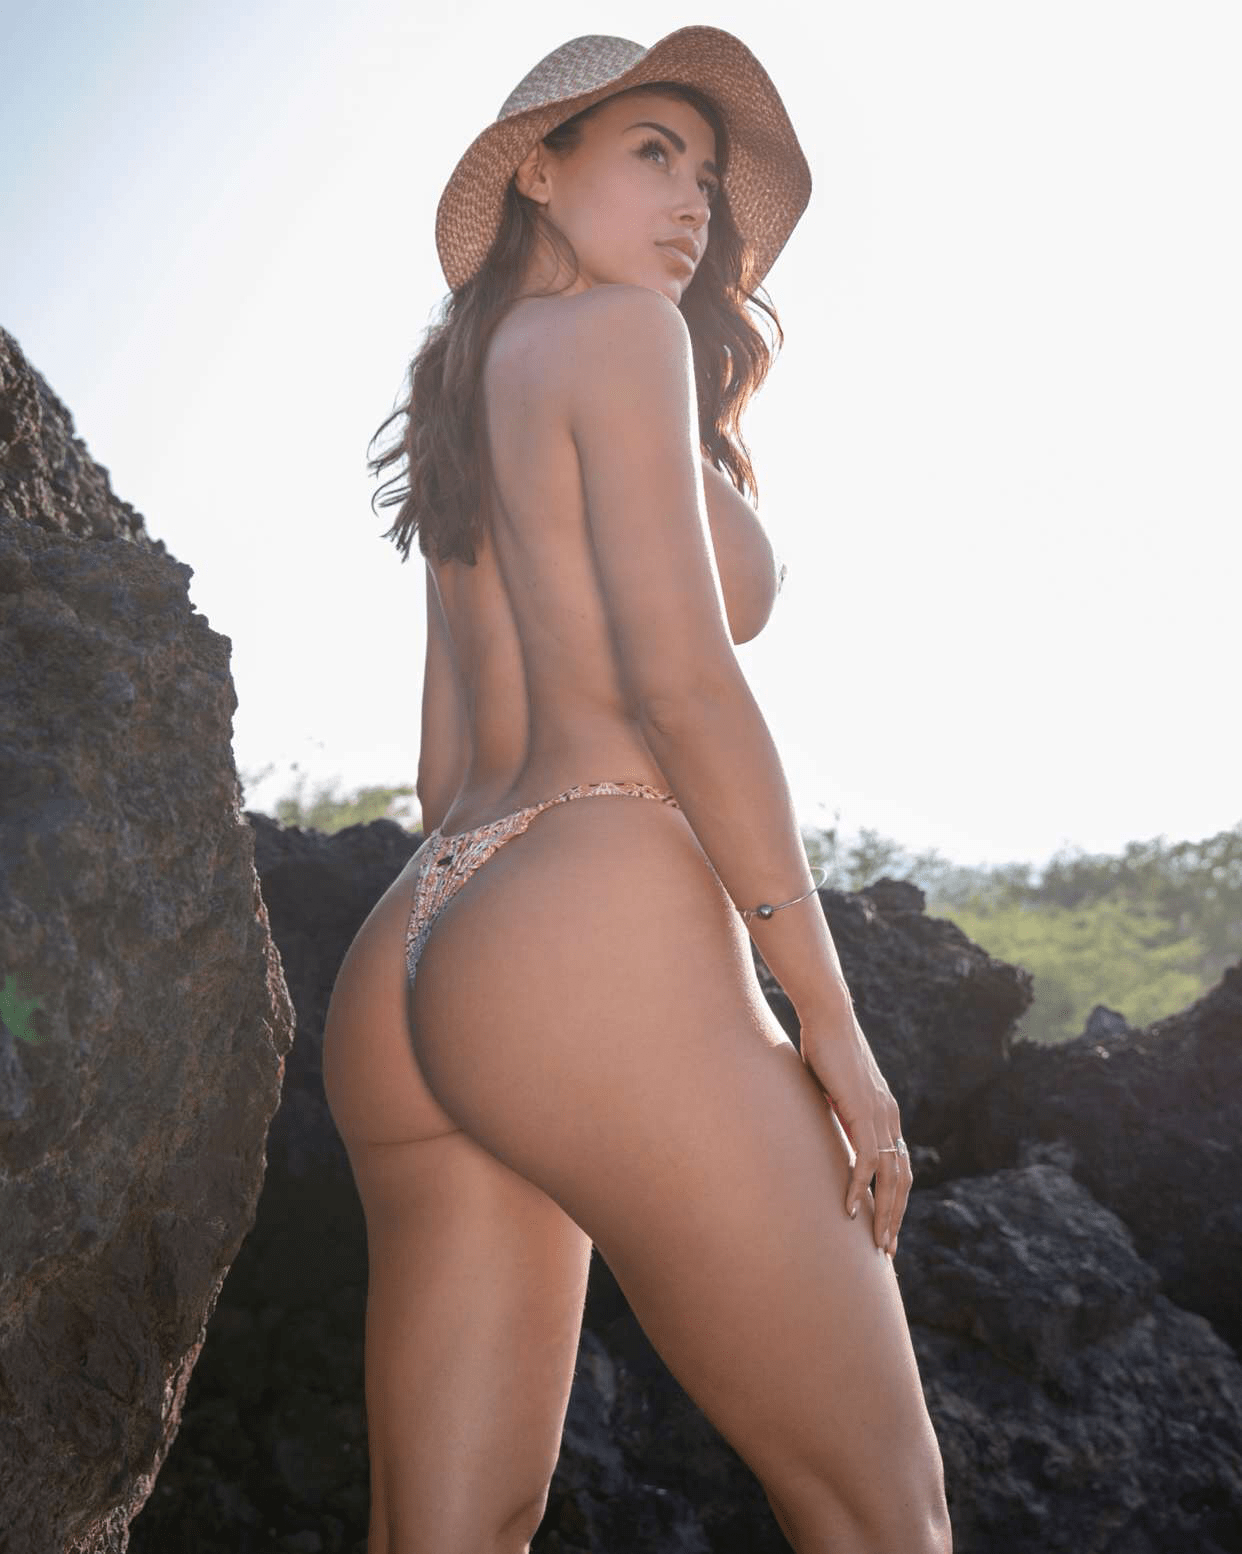 Ana Cheri Nude Onlyfans Leaked 0003